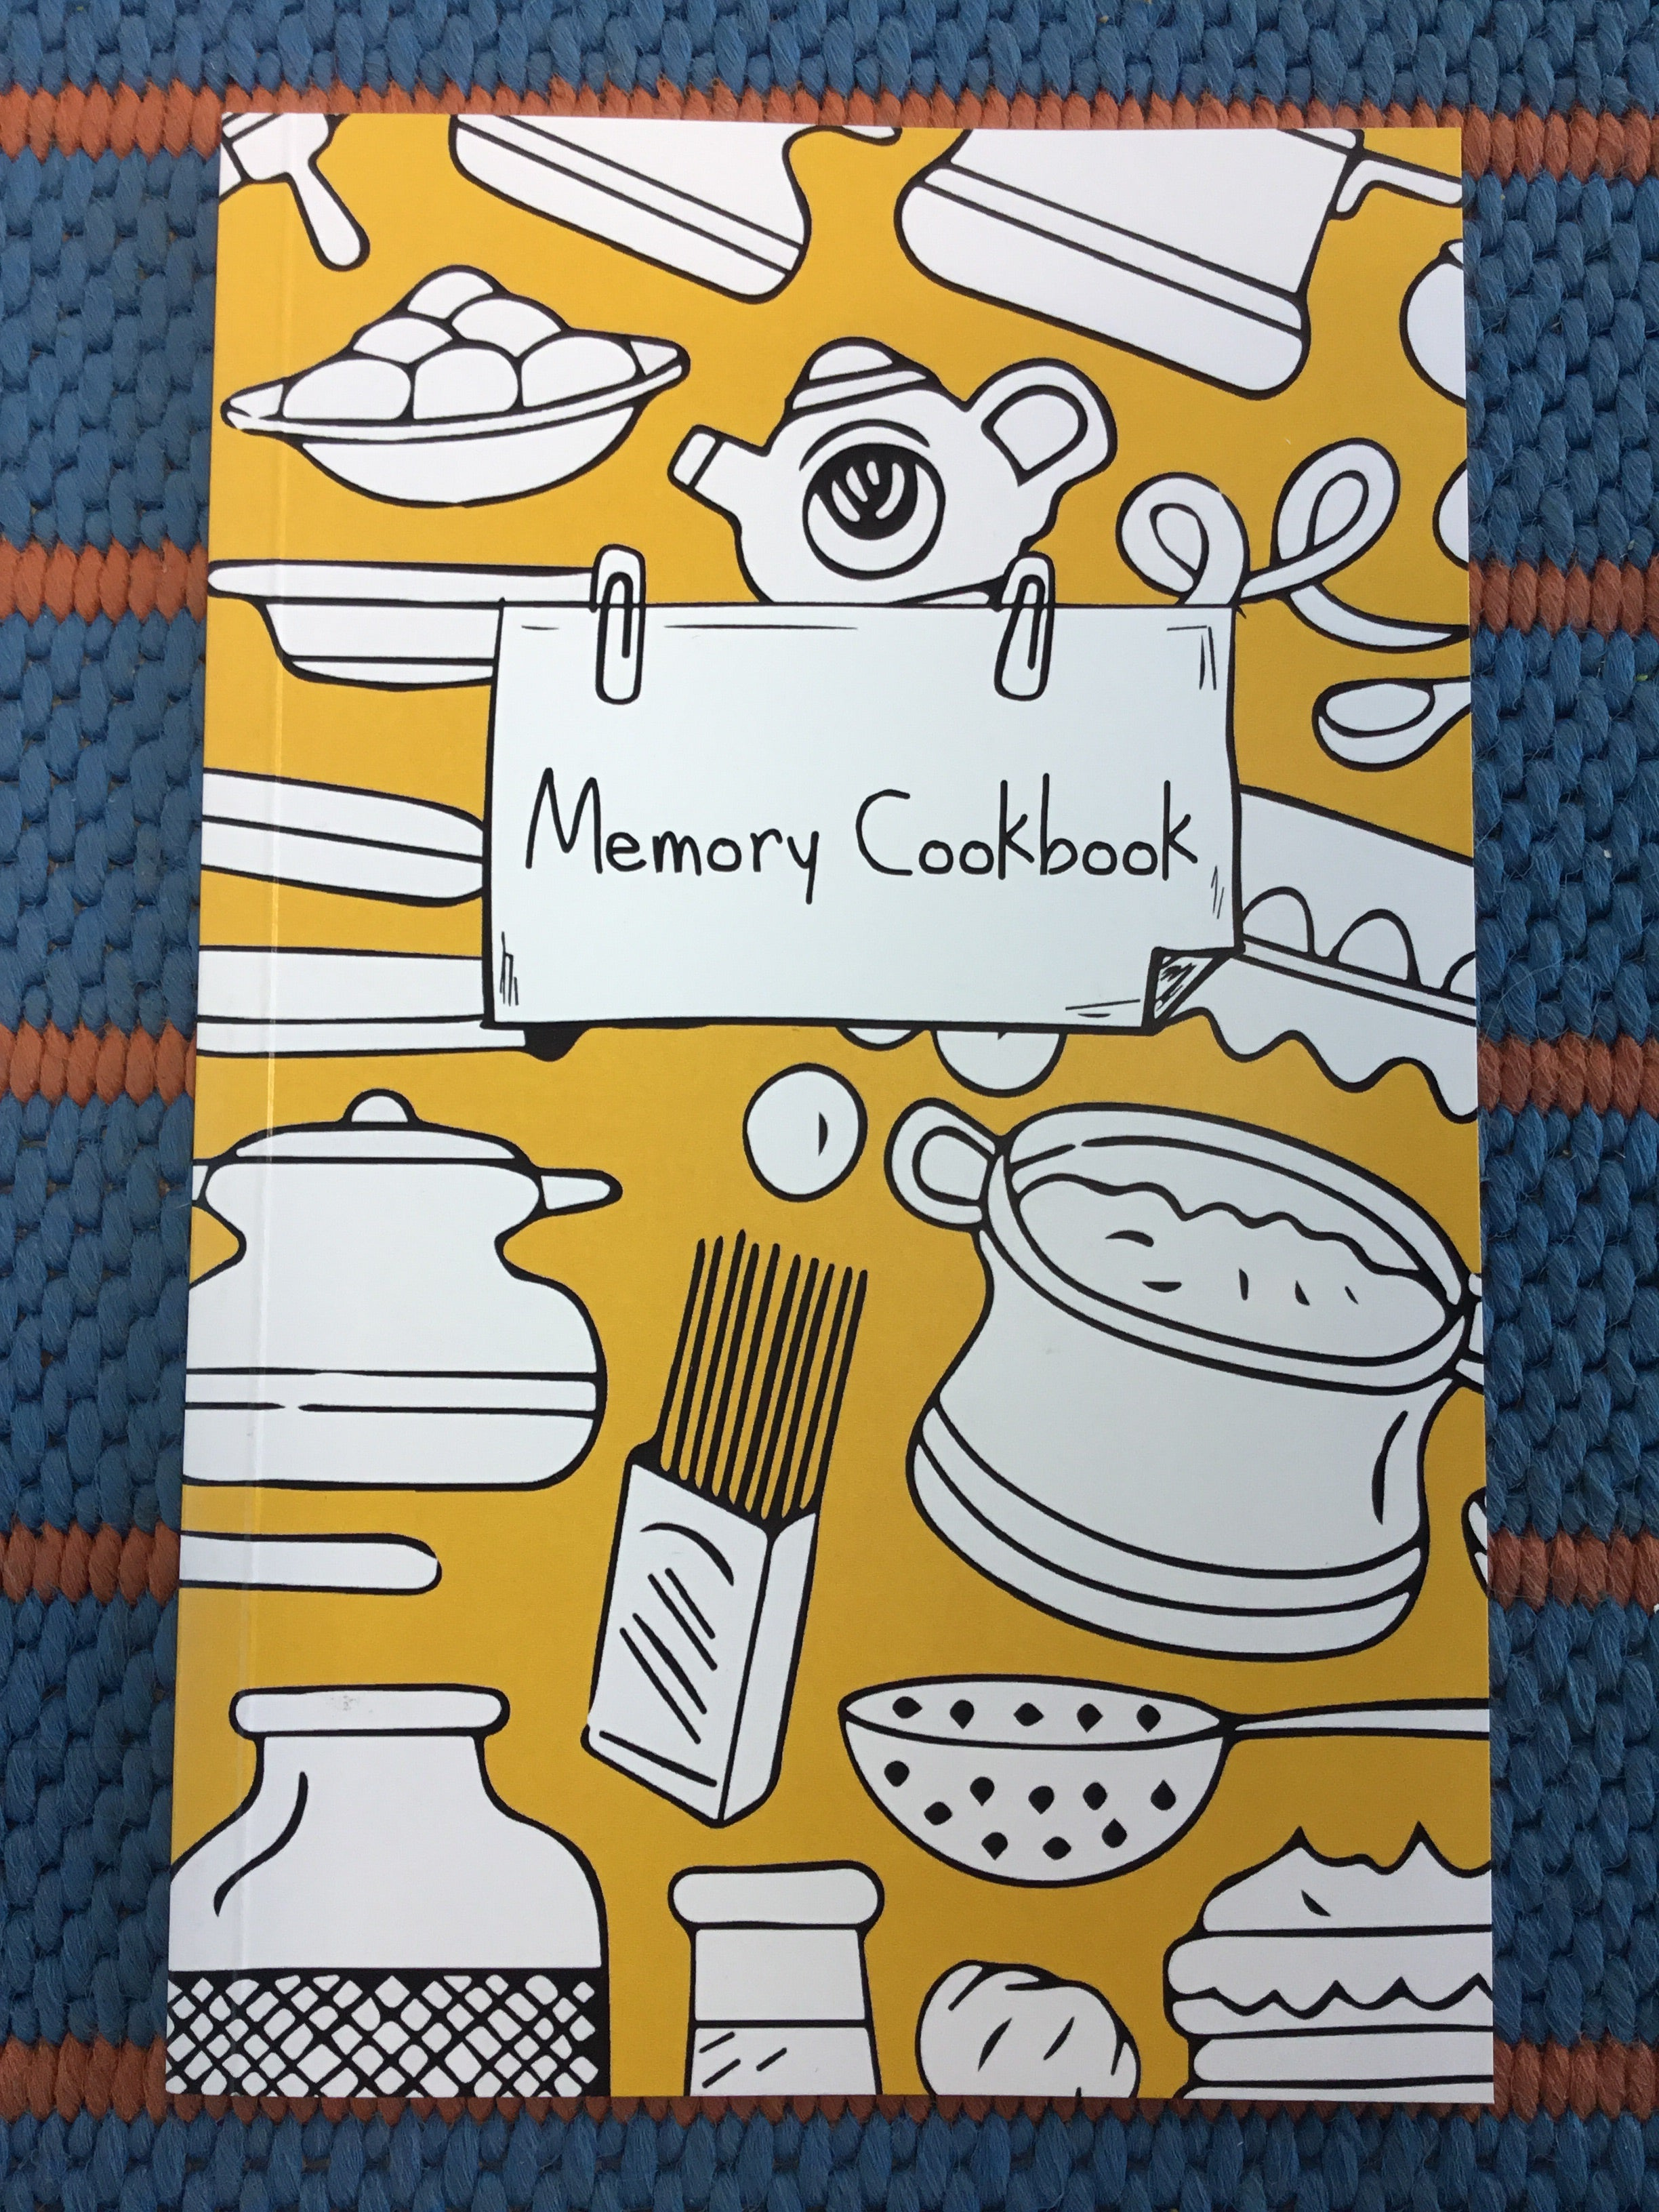 Memory Cookbook